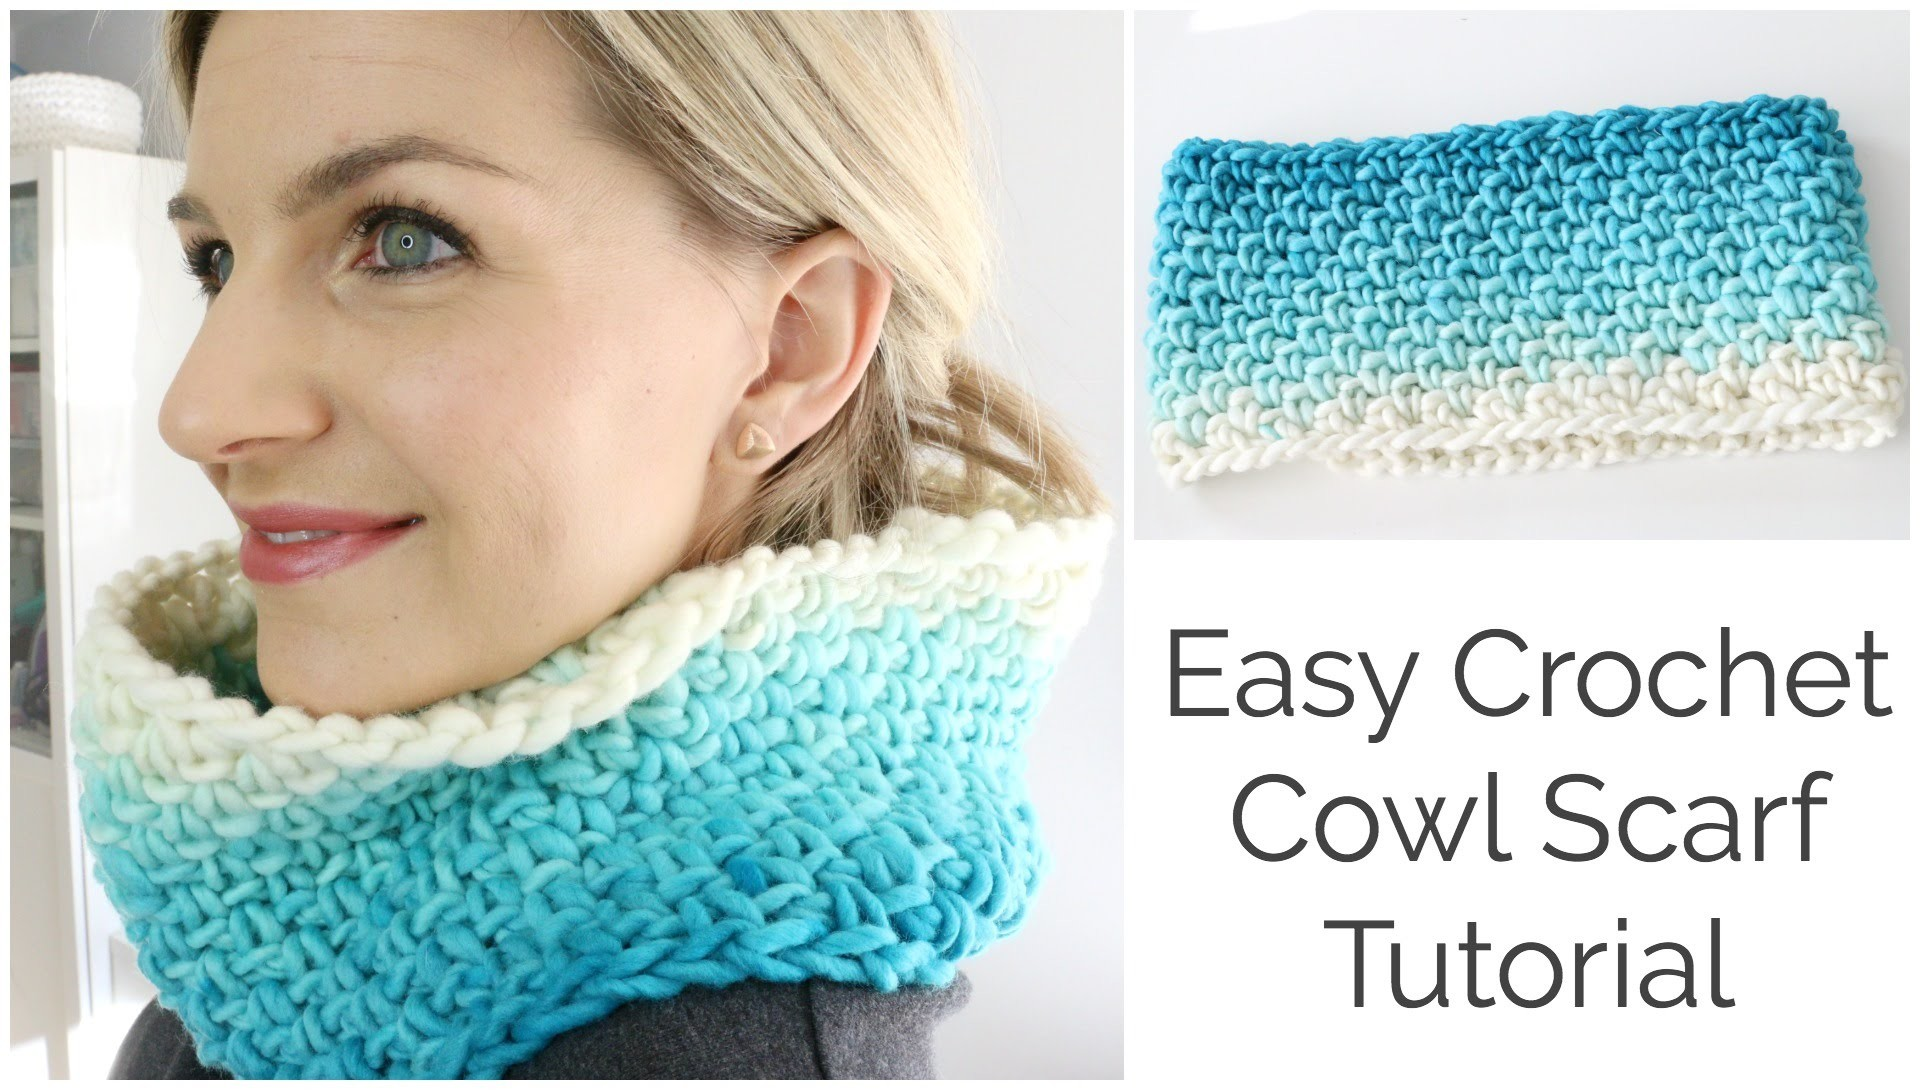 Easy Crochet Cowl Scarf Tutorial